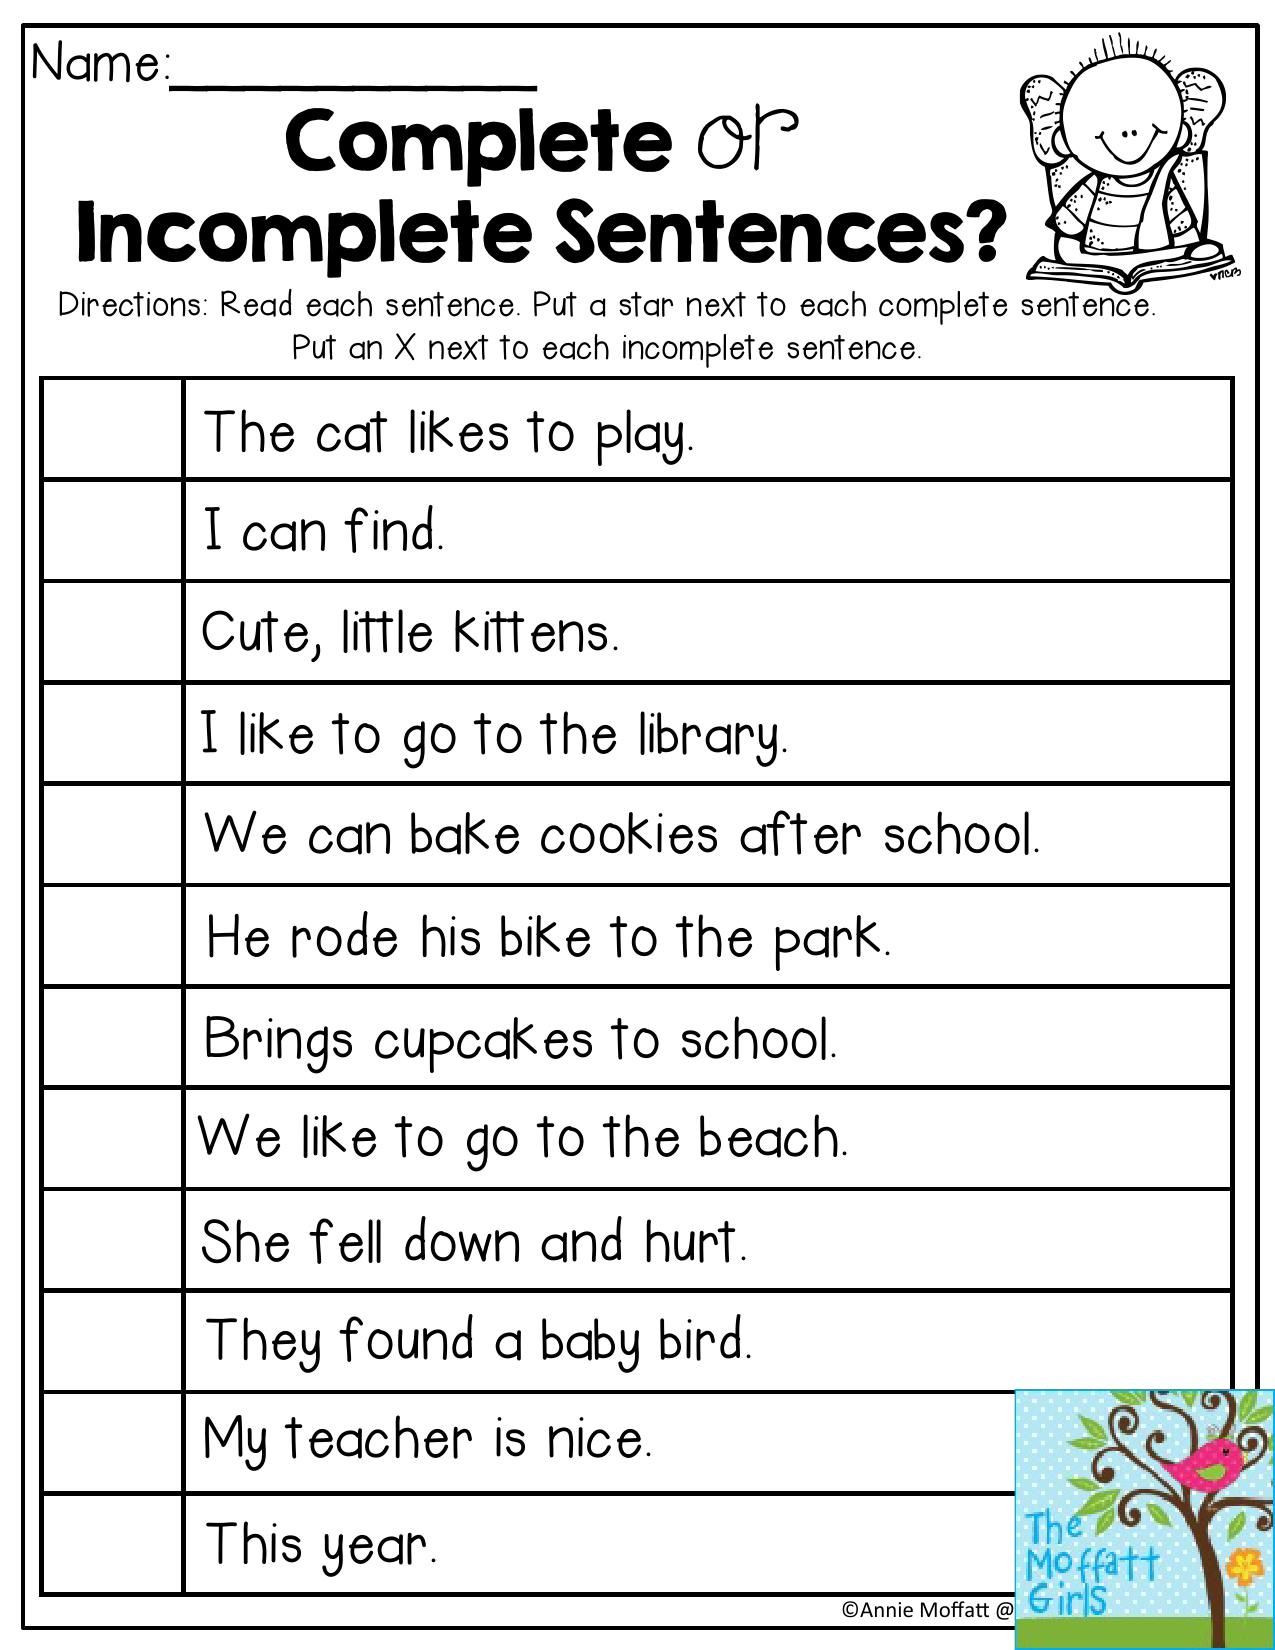 Writing Complete Sentences Worksheets Plete or In Plete Sentences Read Each Sentence and